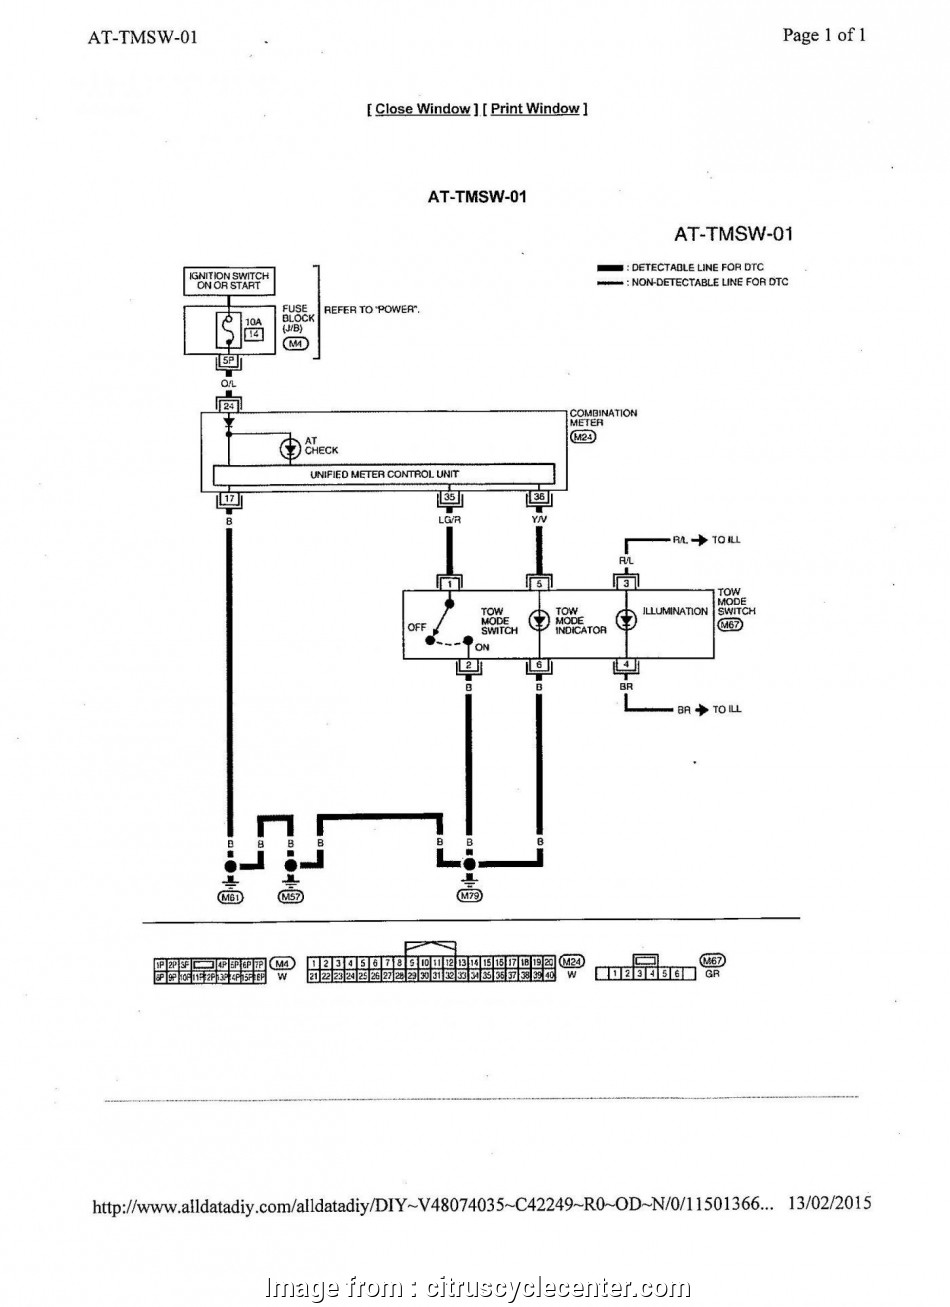 Toggle Switch Ignition Wiring Nice      To Wire A On  On Toggle Switch Diagram Reference Spst